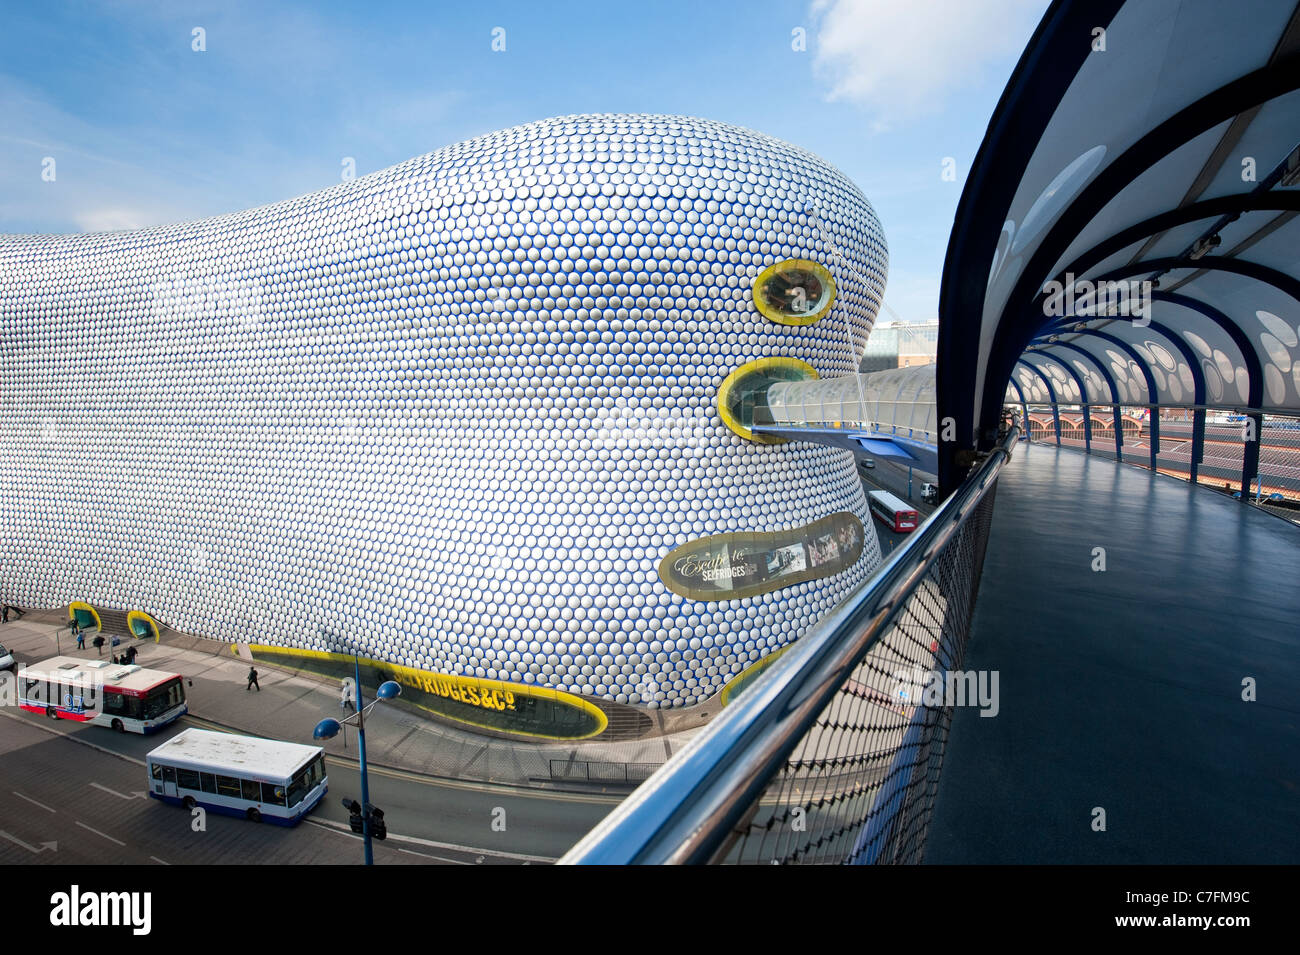 Pont à Selfridges au centre commercial Bull Ring, Birmingham, UK Photo Stock